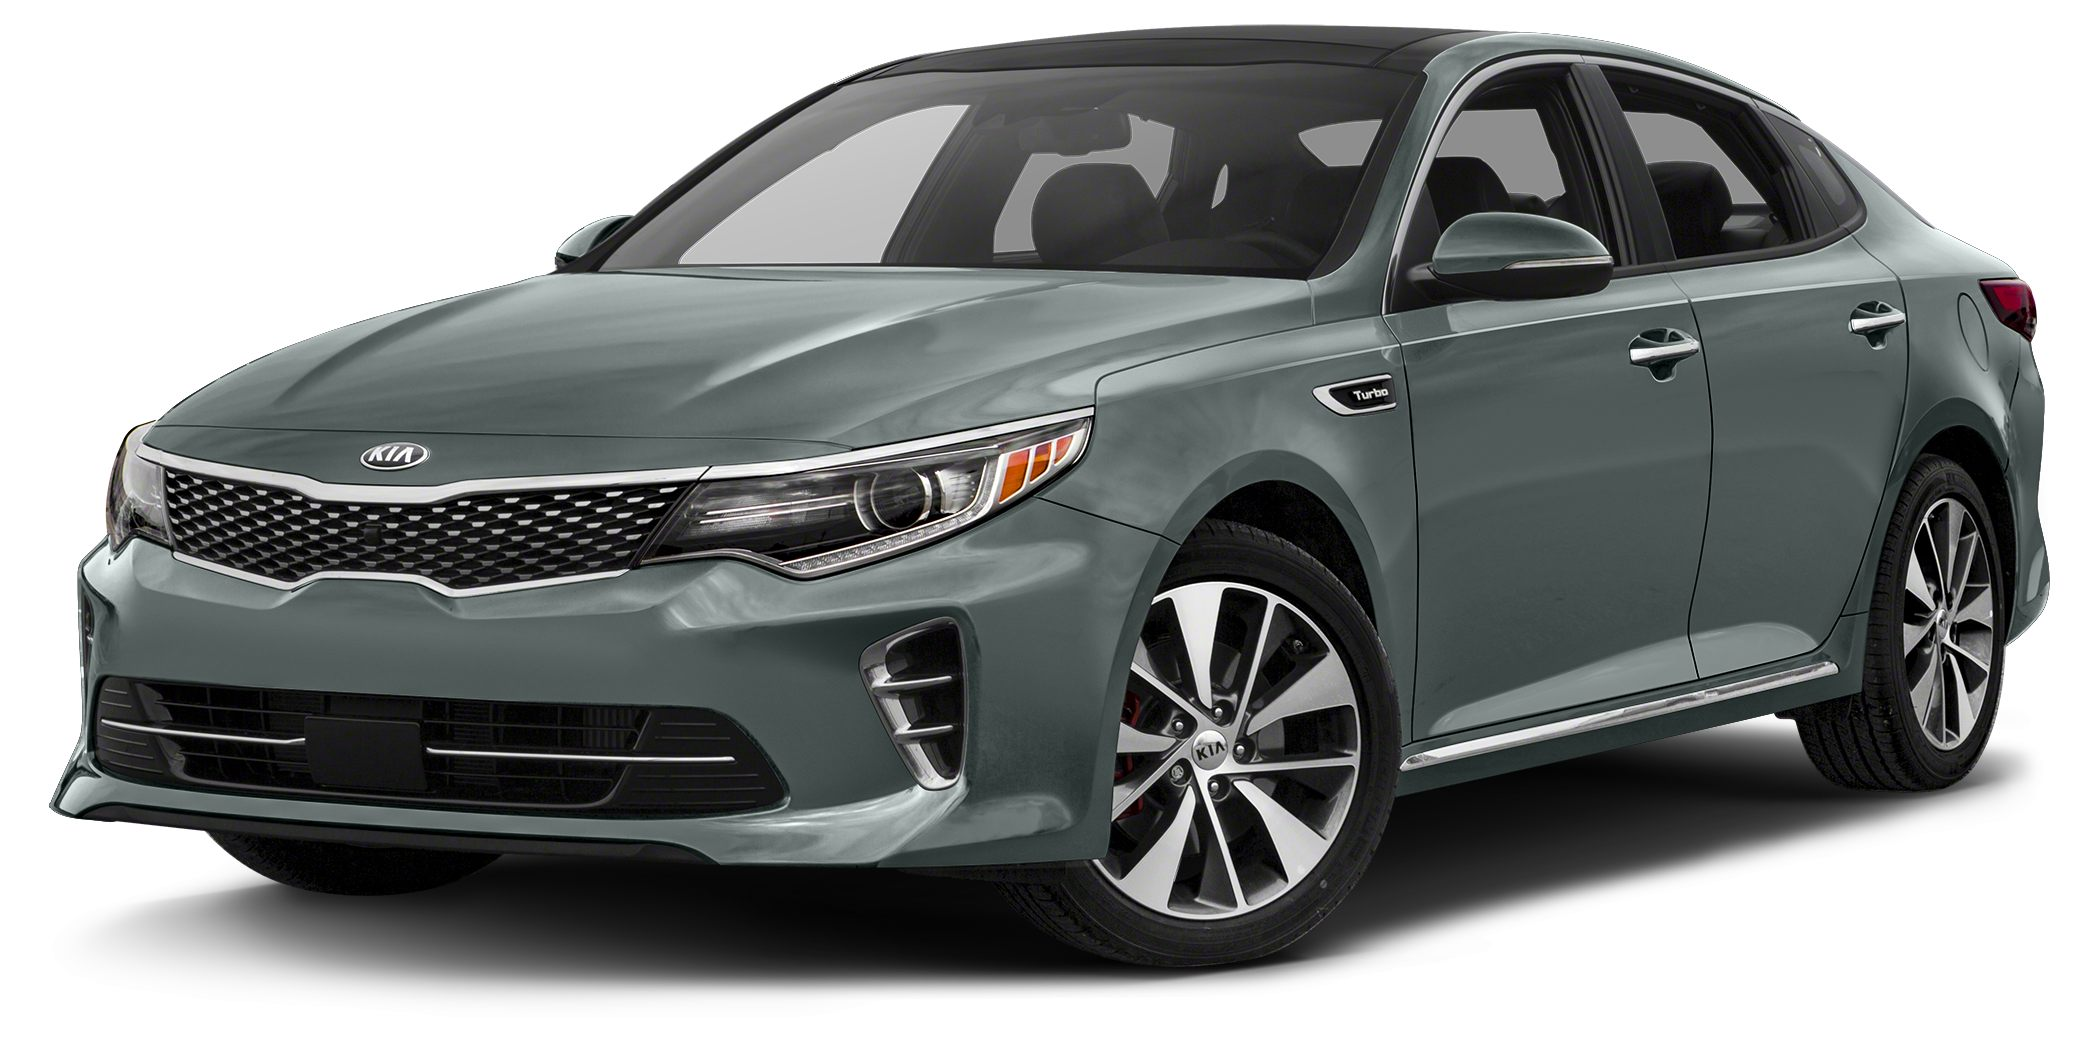 2017 Kia Optima SX Turbo Miles 15Color Remington Red Stock K16498 VIN 5XXGW4L2XHG133263